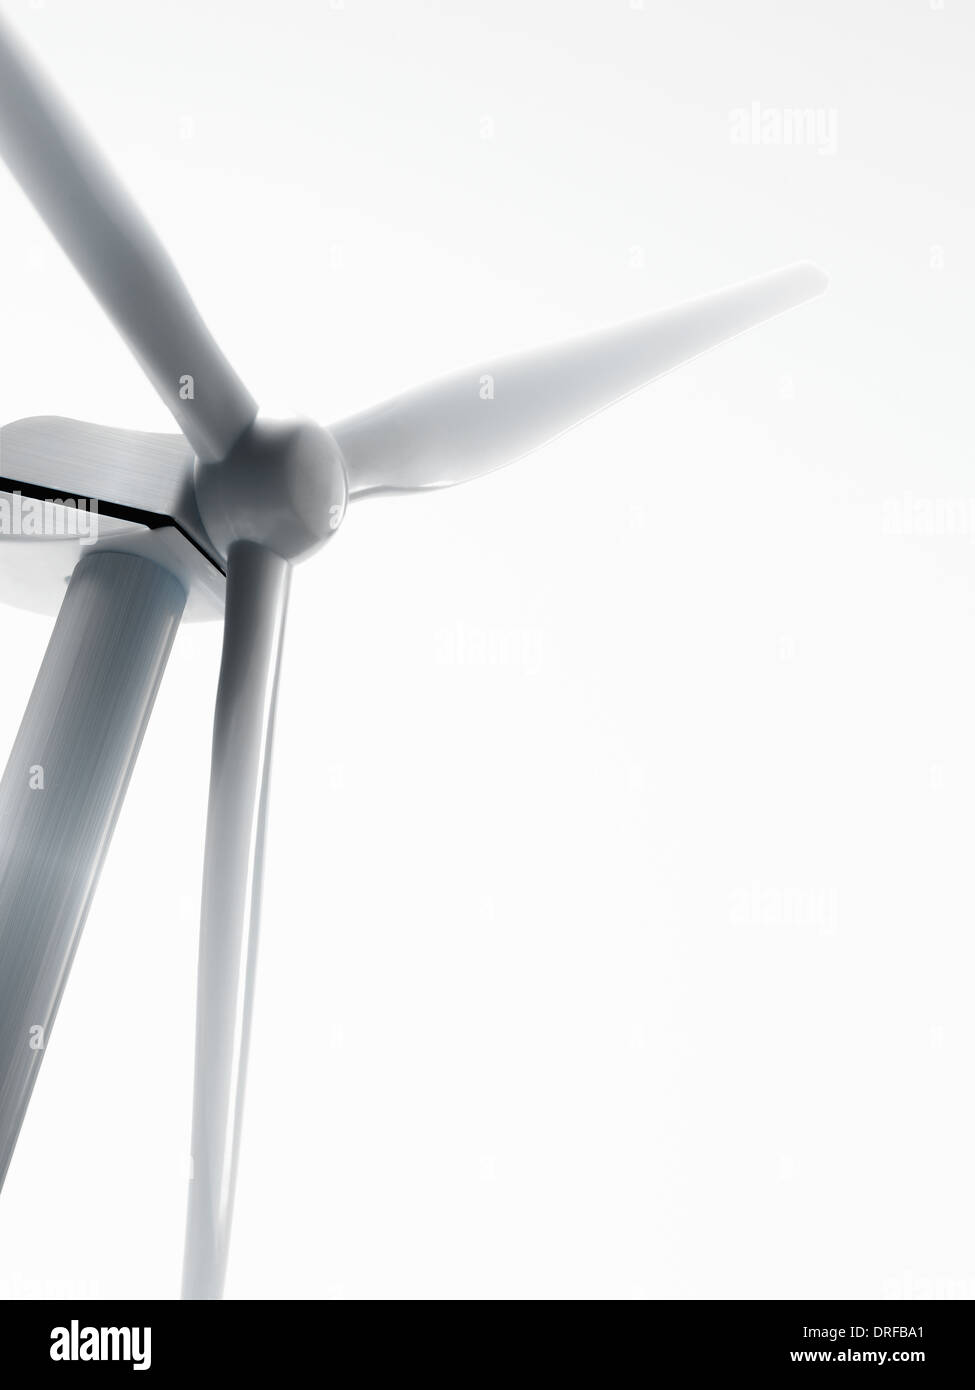 wind turbine or wind power generator - Stock Image